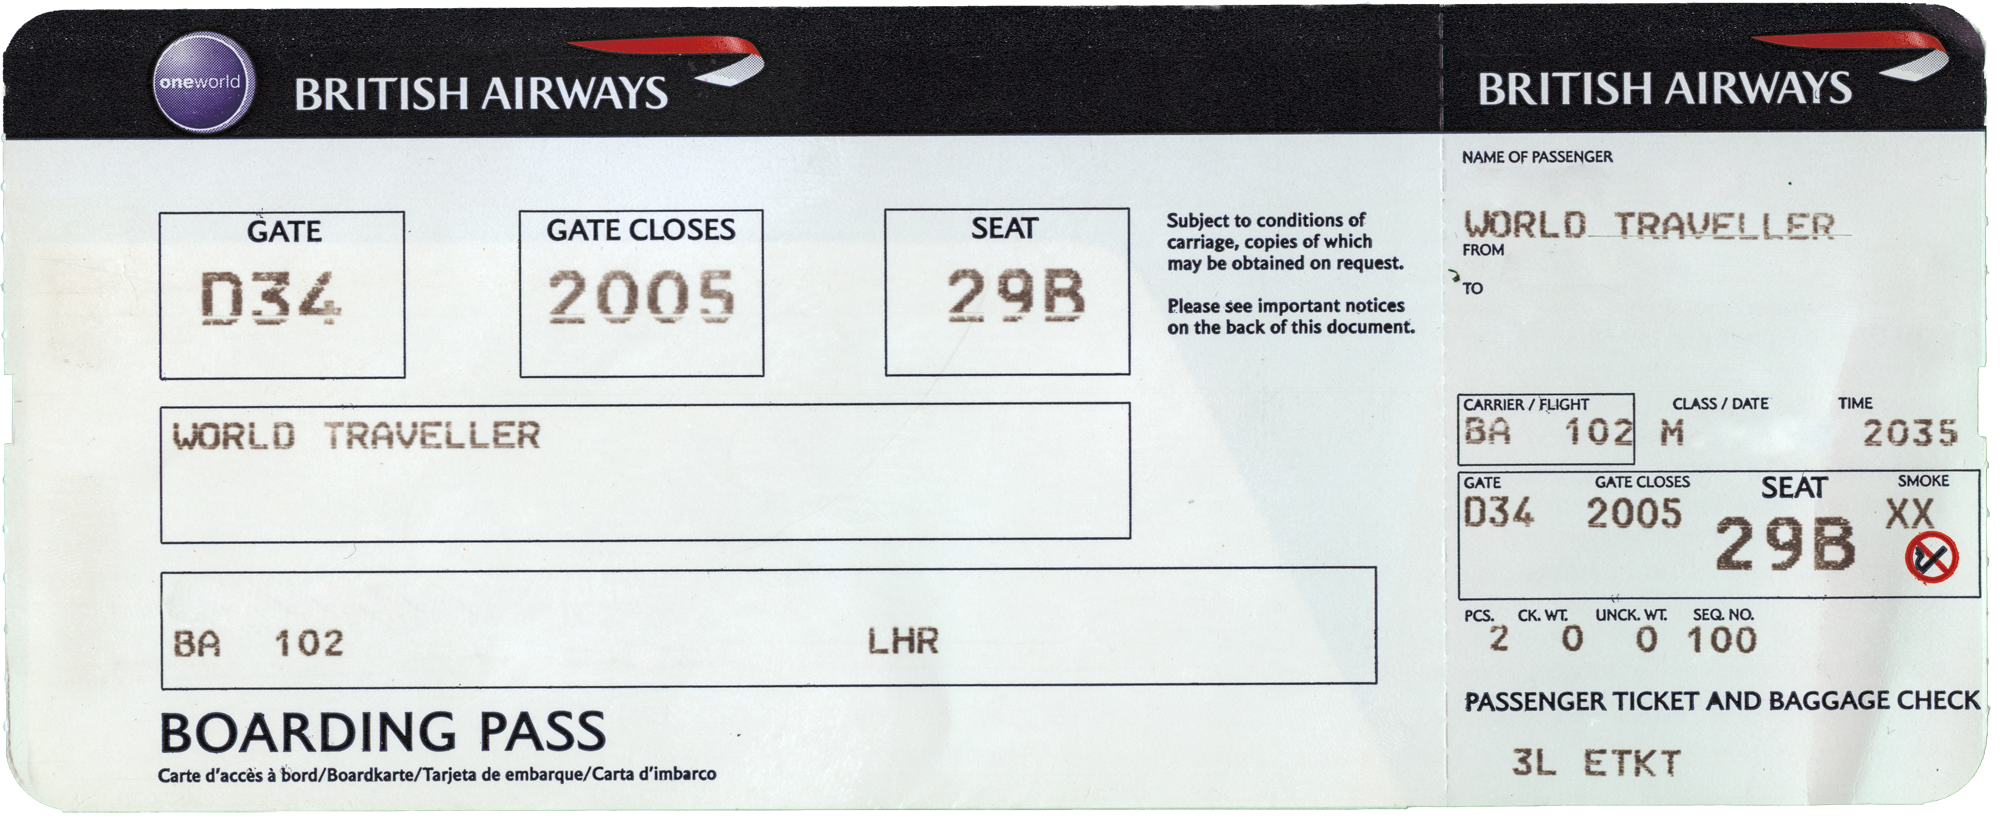 Airplane_Boarding_Pass_Template http://aquariusbeauty.co.uk/ag-blank-plane-ticket-template/